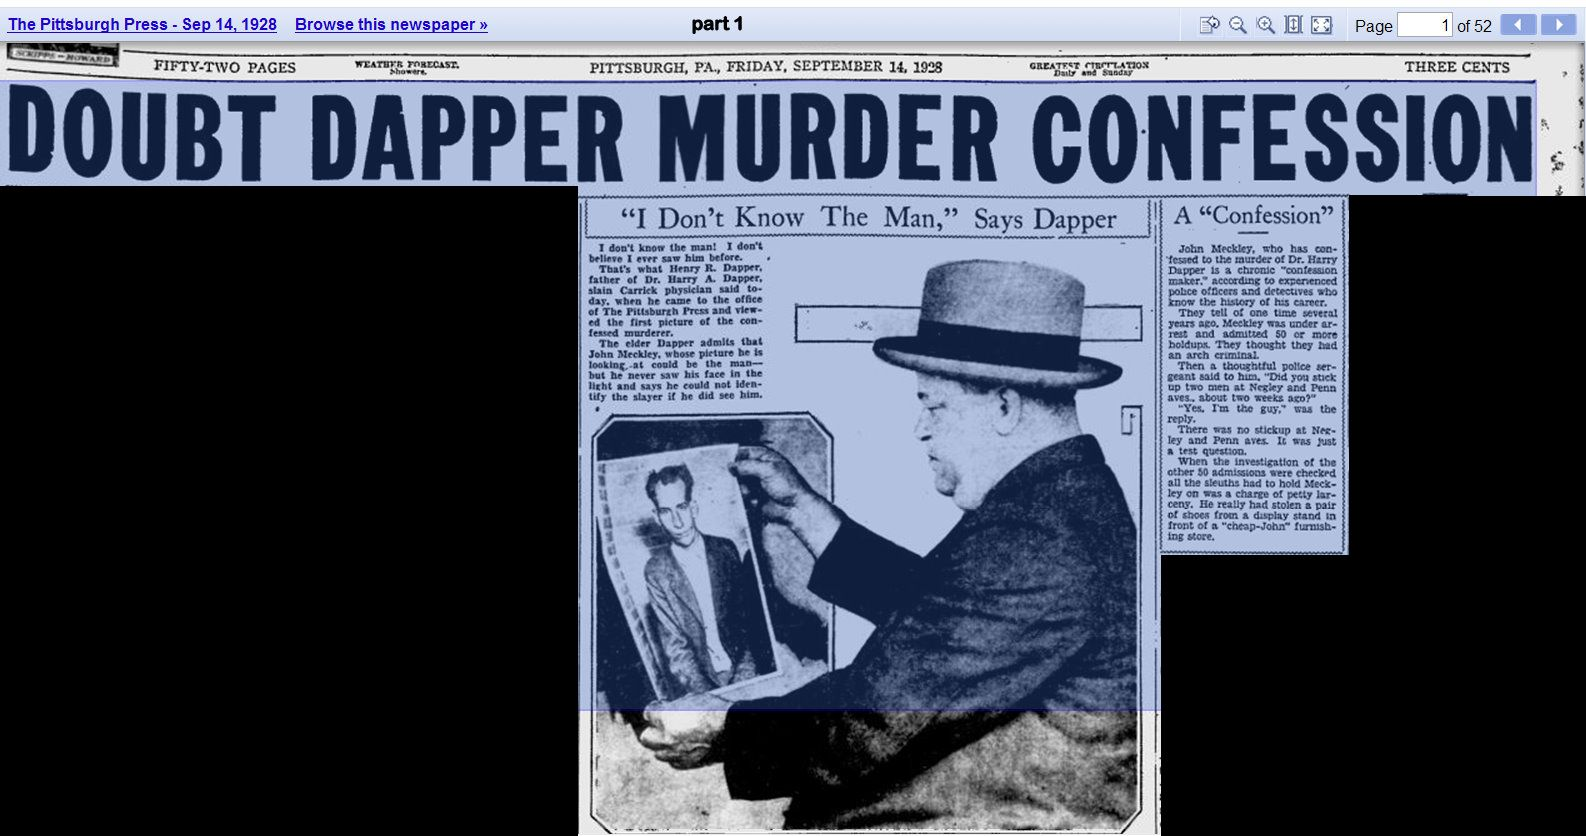 The Pittsburgh Press - Murder Confession Sept 14, 1928 page 1.jpg